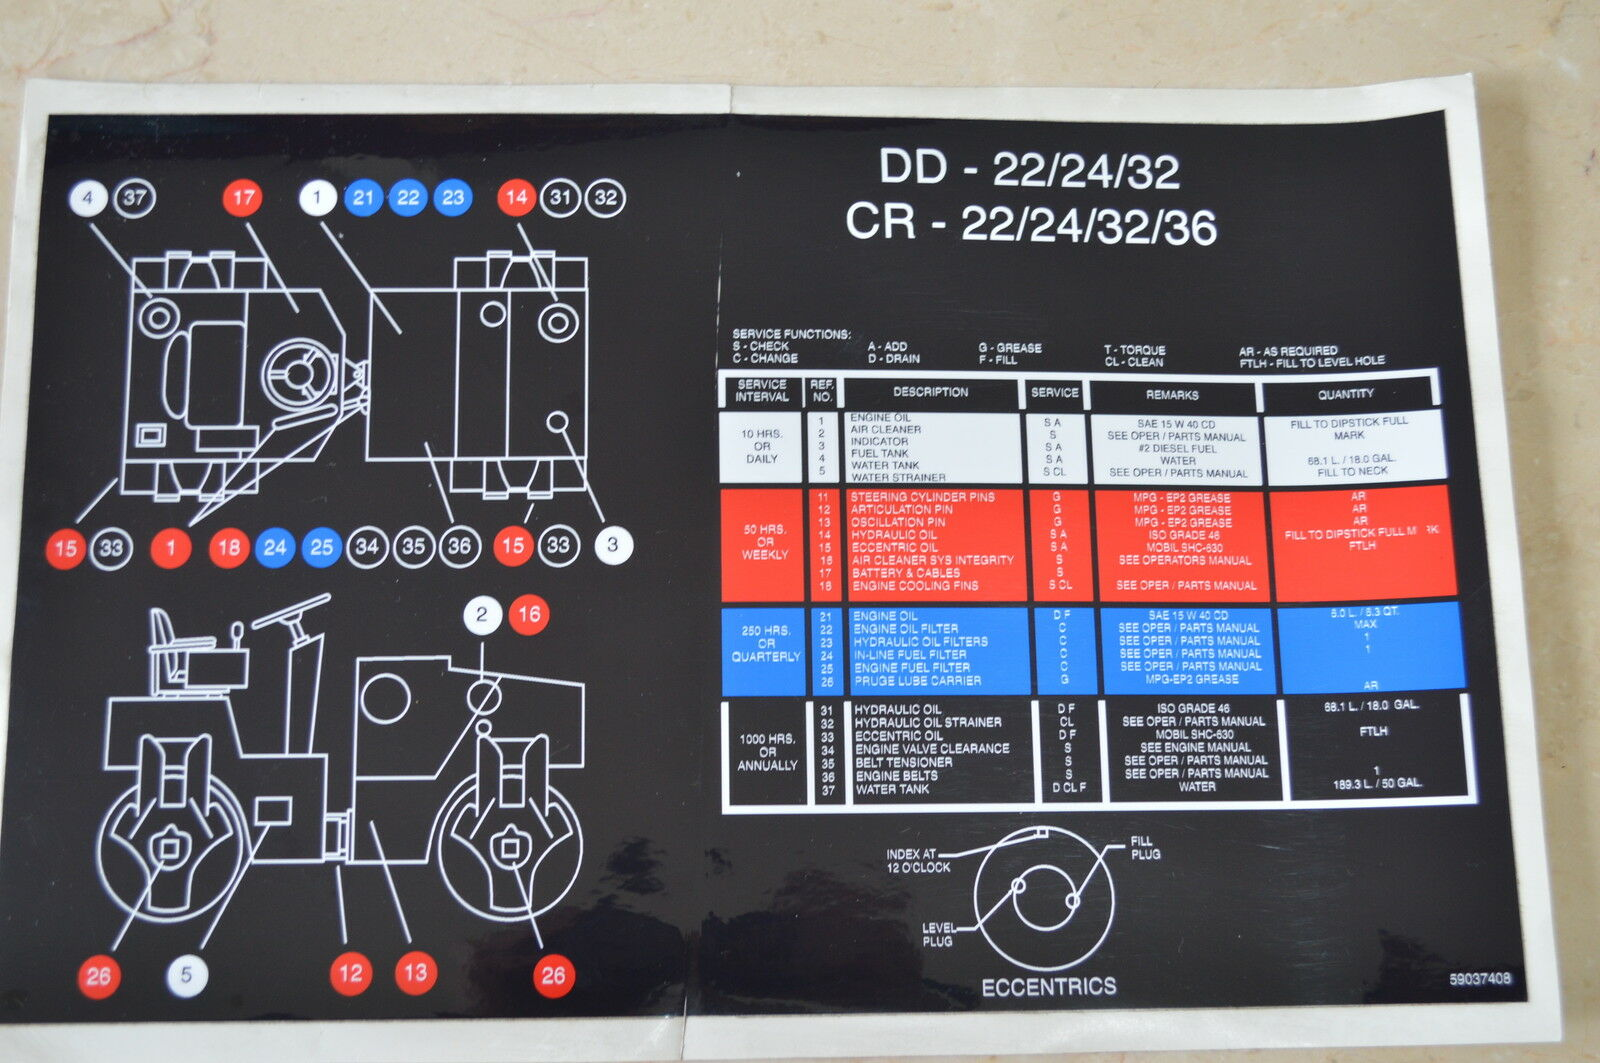 Wiring Diagram Ingersoll Rand Sd100d Tf - Trusted wiring diagrams on ingersoll rand sd100, ingersoll rand sd45d, ingersoll rand construction equipment, ingersoll rand sd45, ingersoll rand sd40d, ingersoll rand roller specifications,